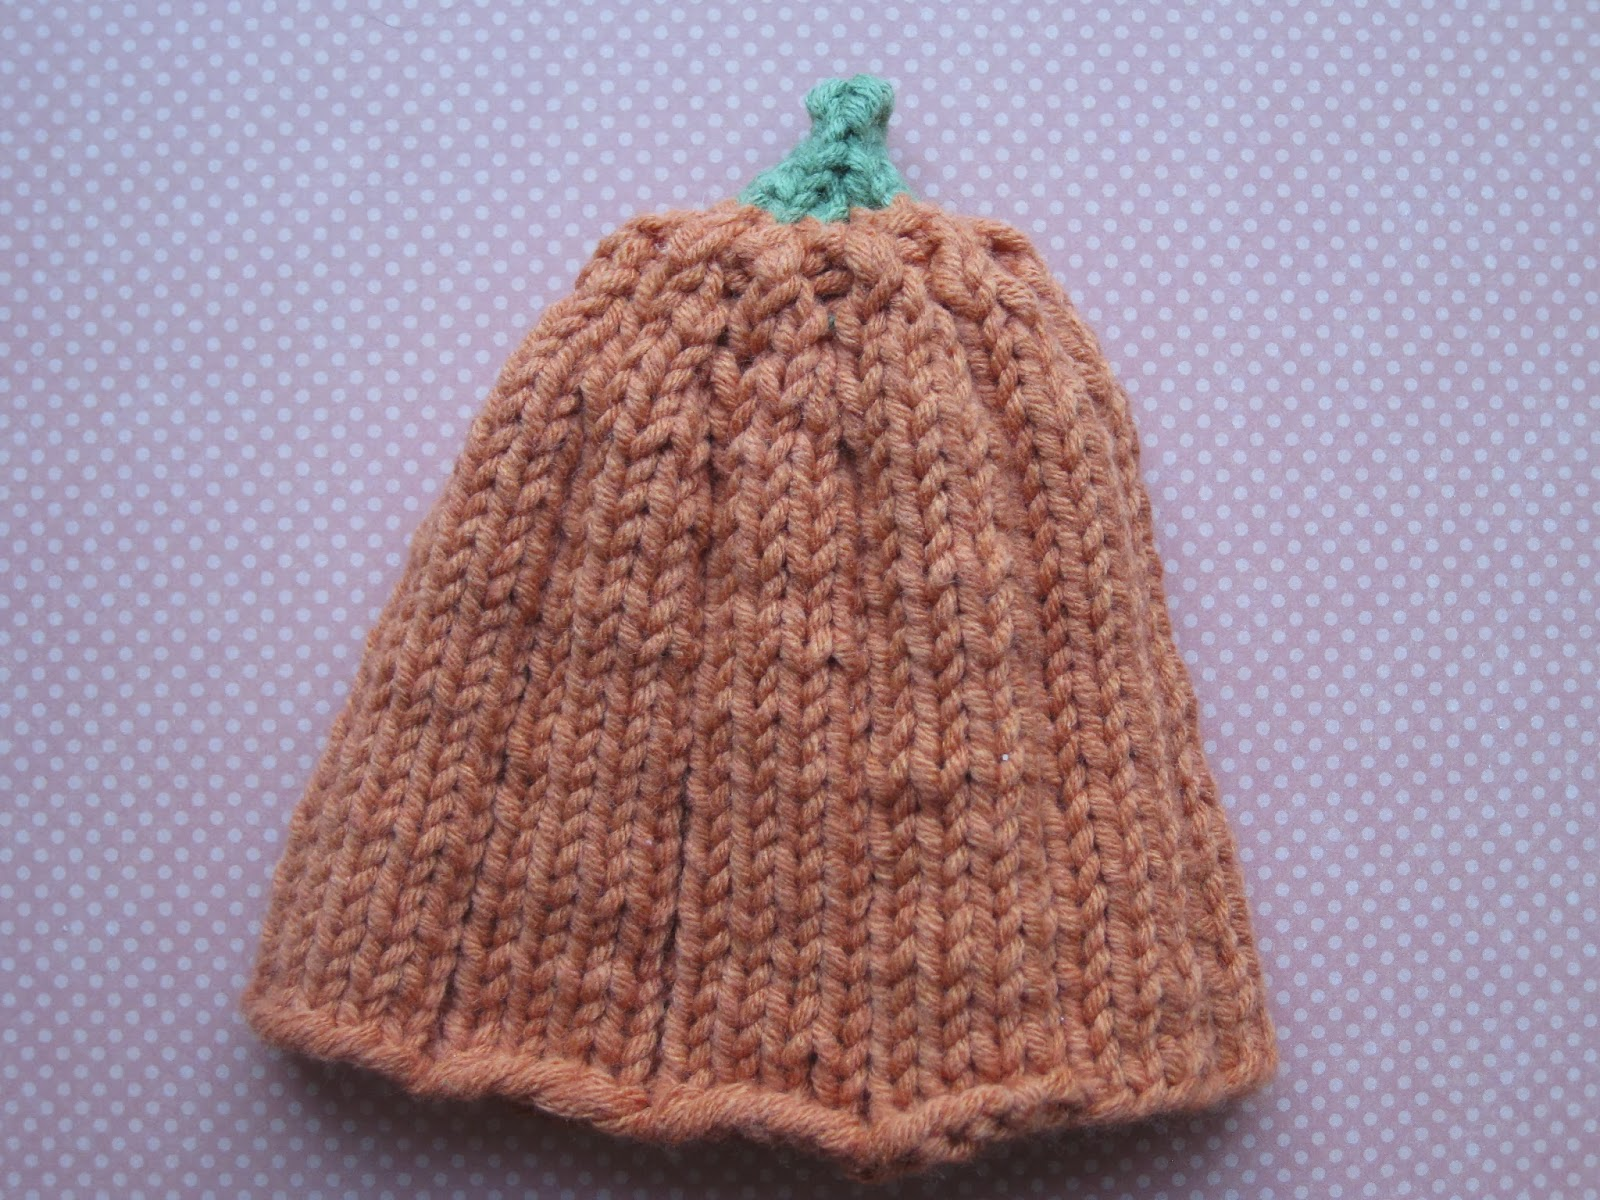 Knitting Patterns Hats : Oma Socks: Newborn Pumpkin Hat Knitting Pattern